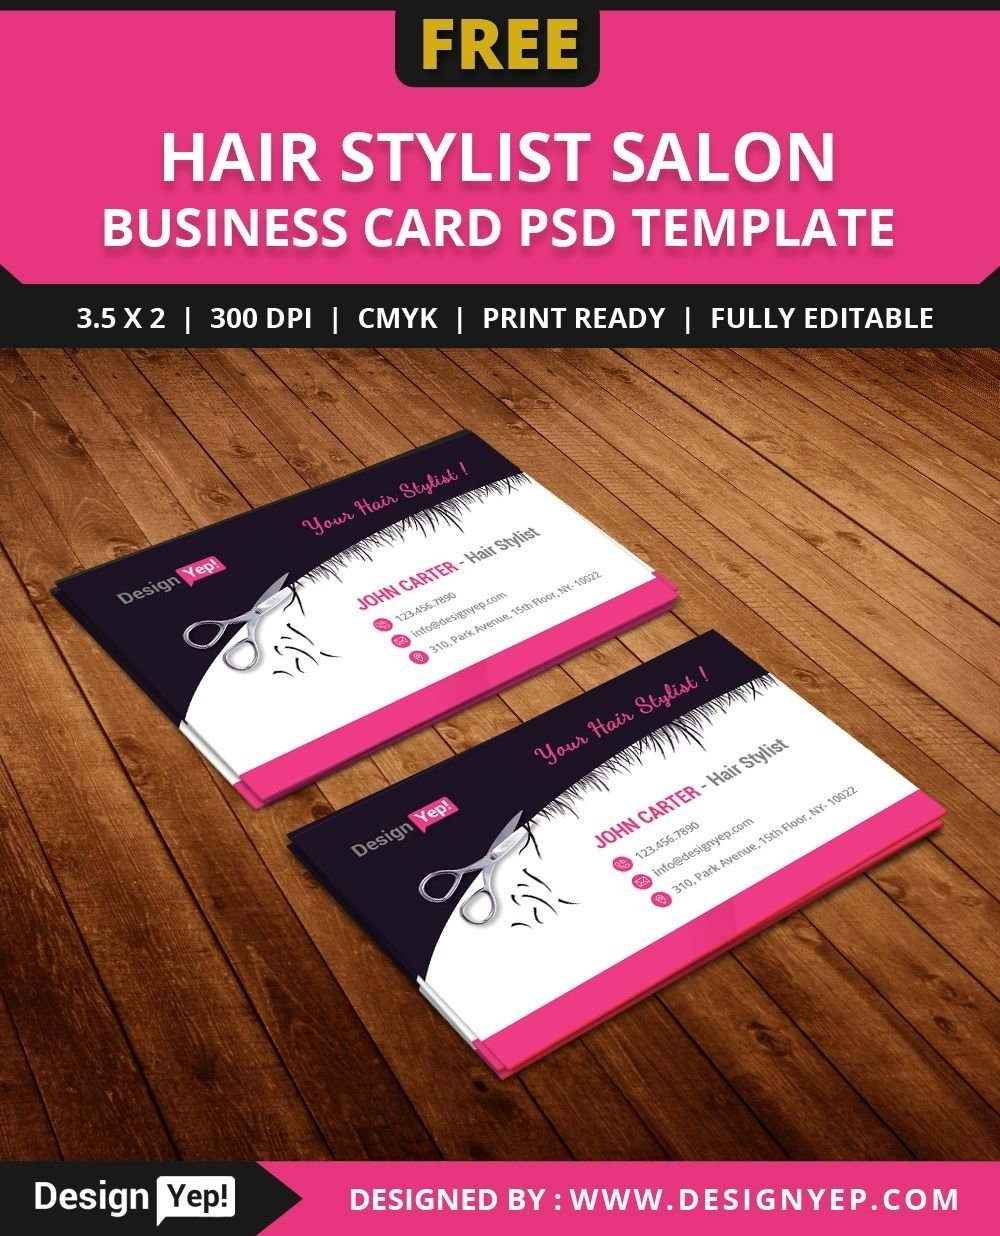 10 Great Hair Stylist Business Card Ideas free hair stylist salon business card template psd free business 2020